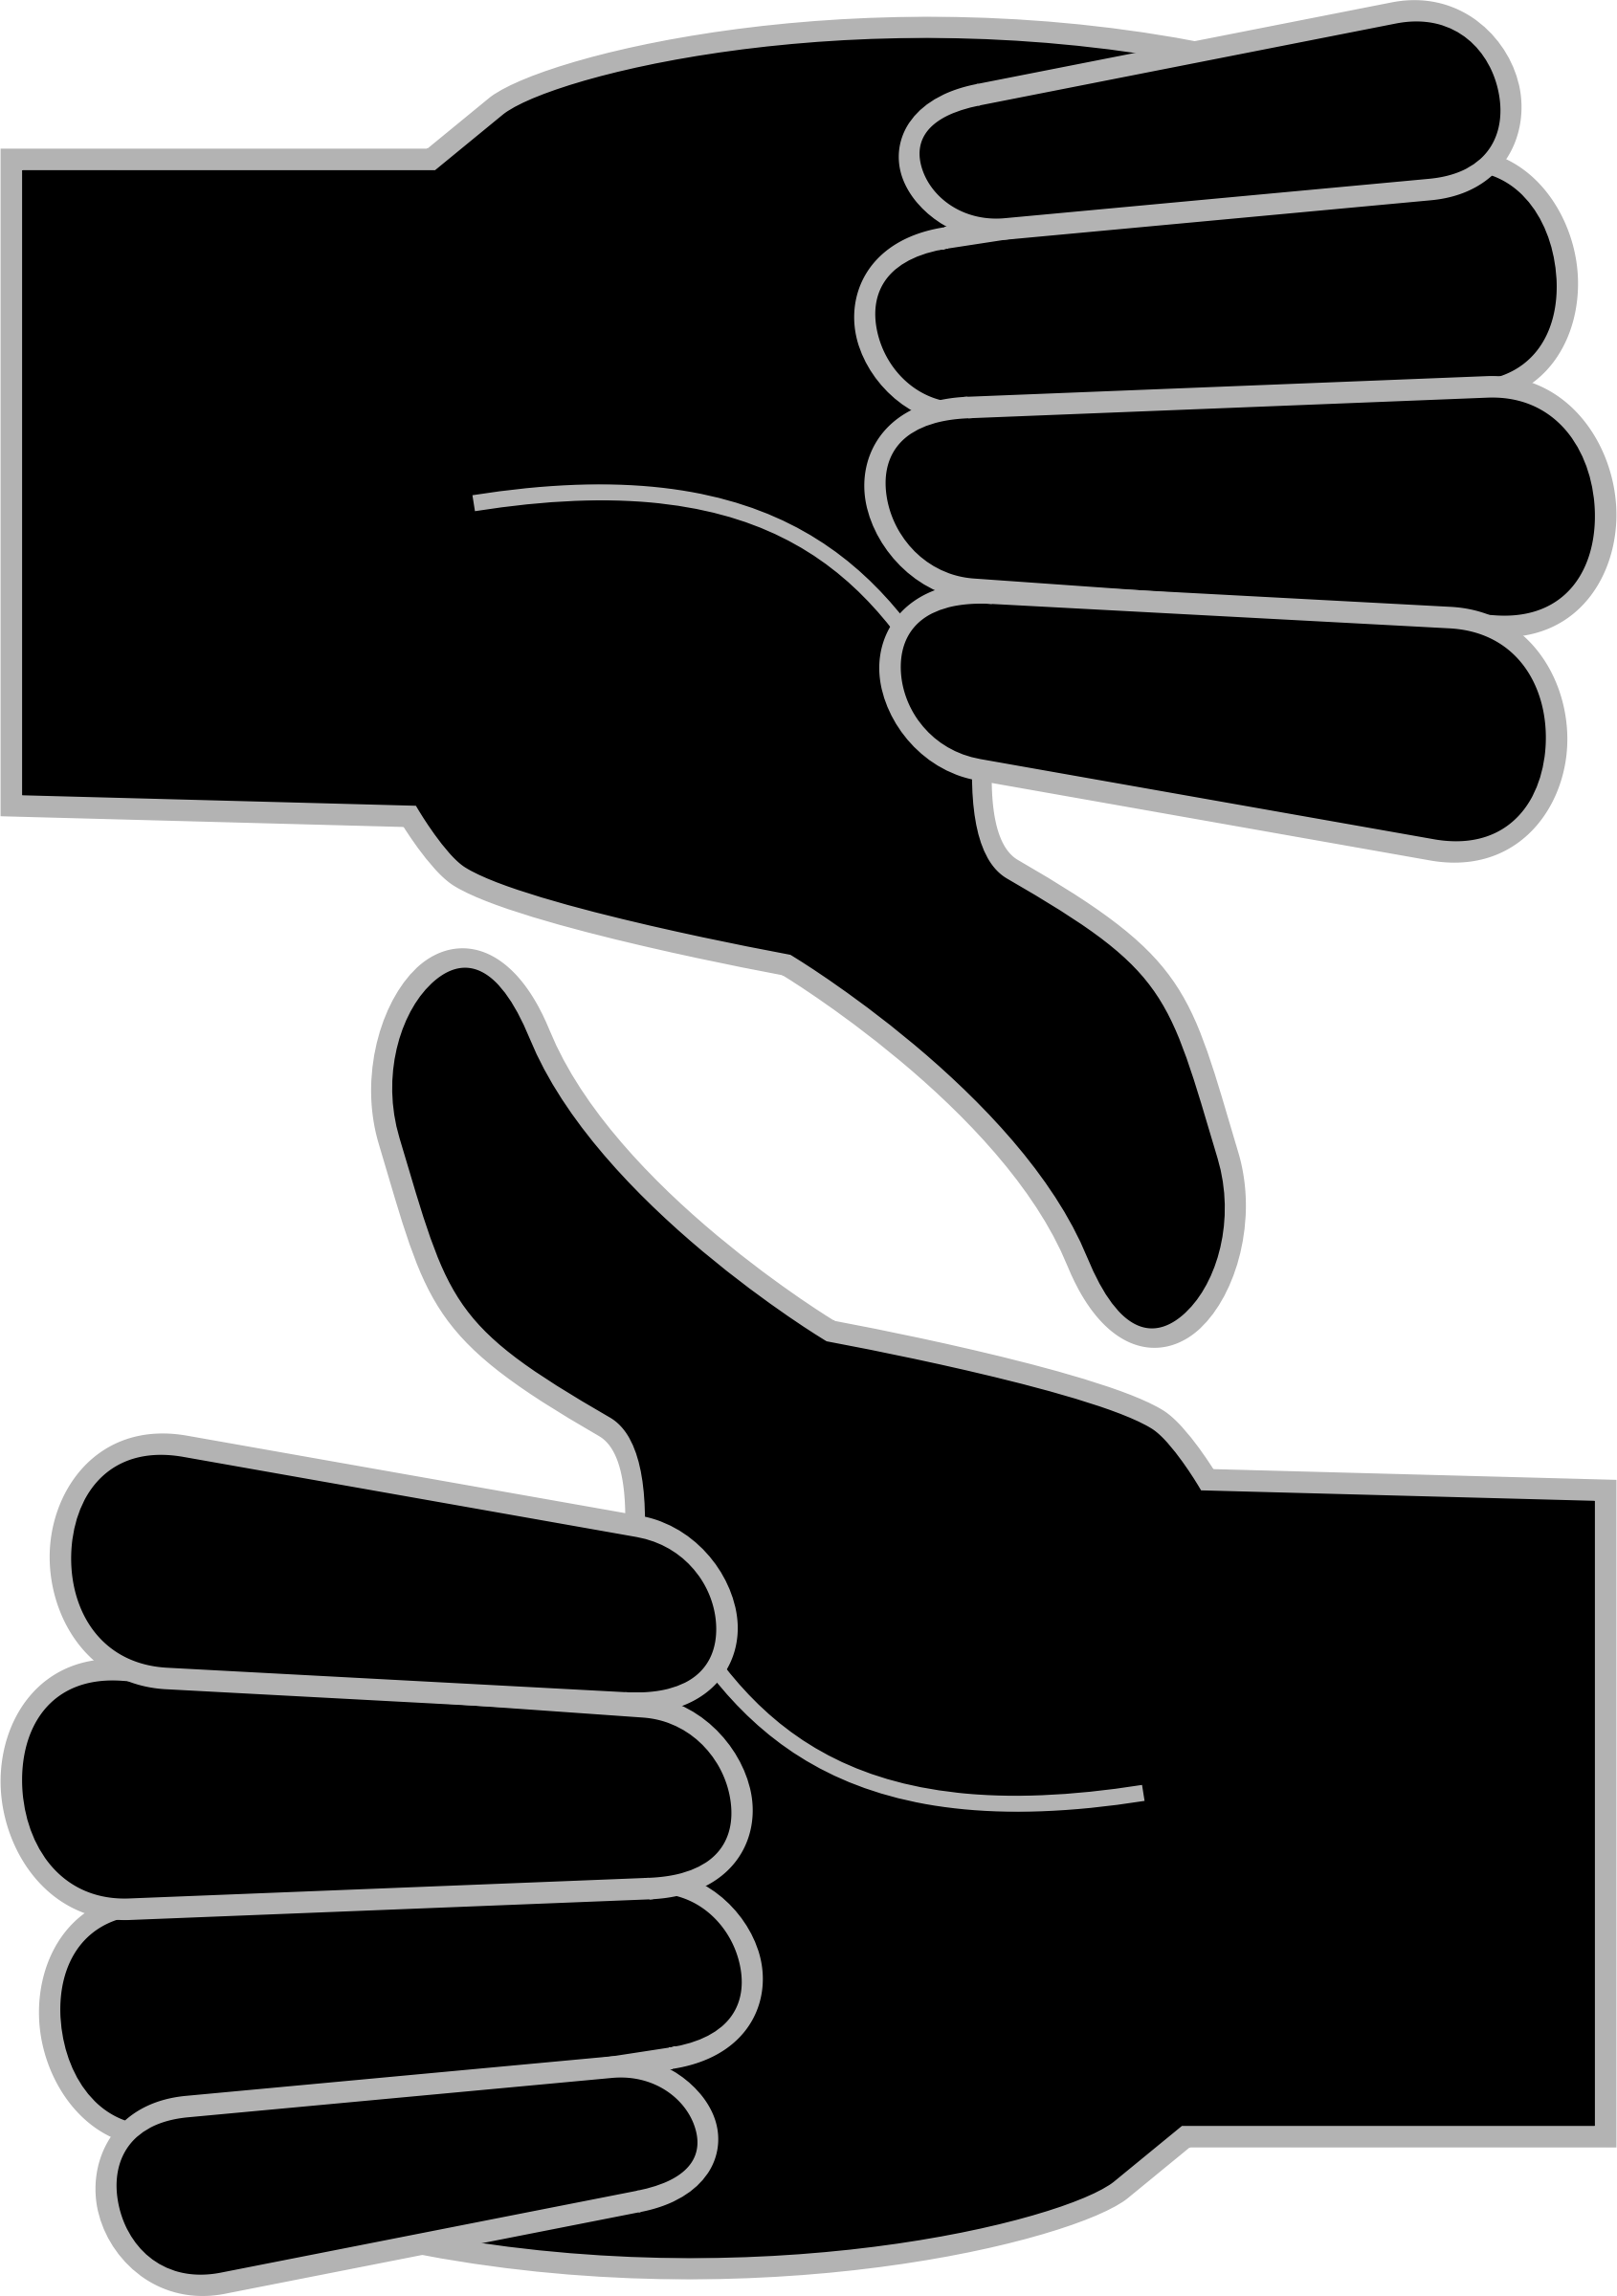 BIG IMAGE (PNG) - Thumbs Up And Thumbs Down PNG HD